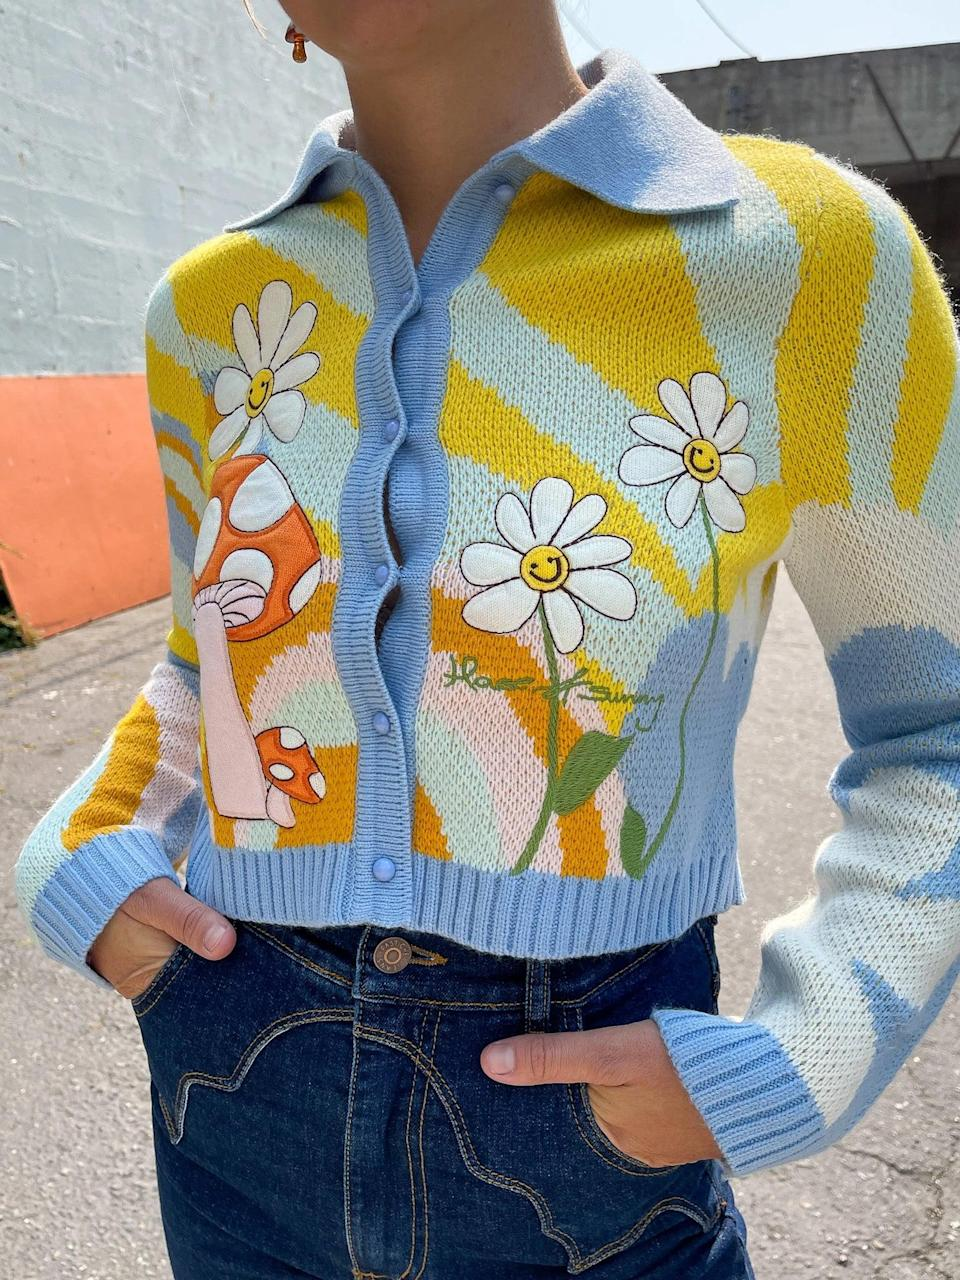 <p>This <span>House of Sunny Big Bloom Cardigan</span> ($154) will make a statement in the most playful way. The flower and mushroom motifs look hand-drawn, and we're also sold on the painting-like look.</p>